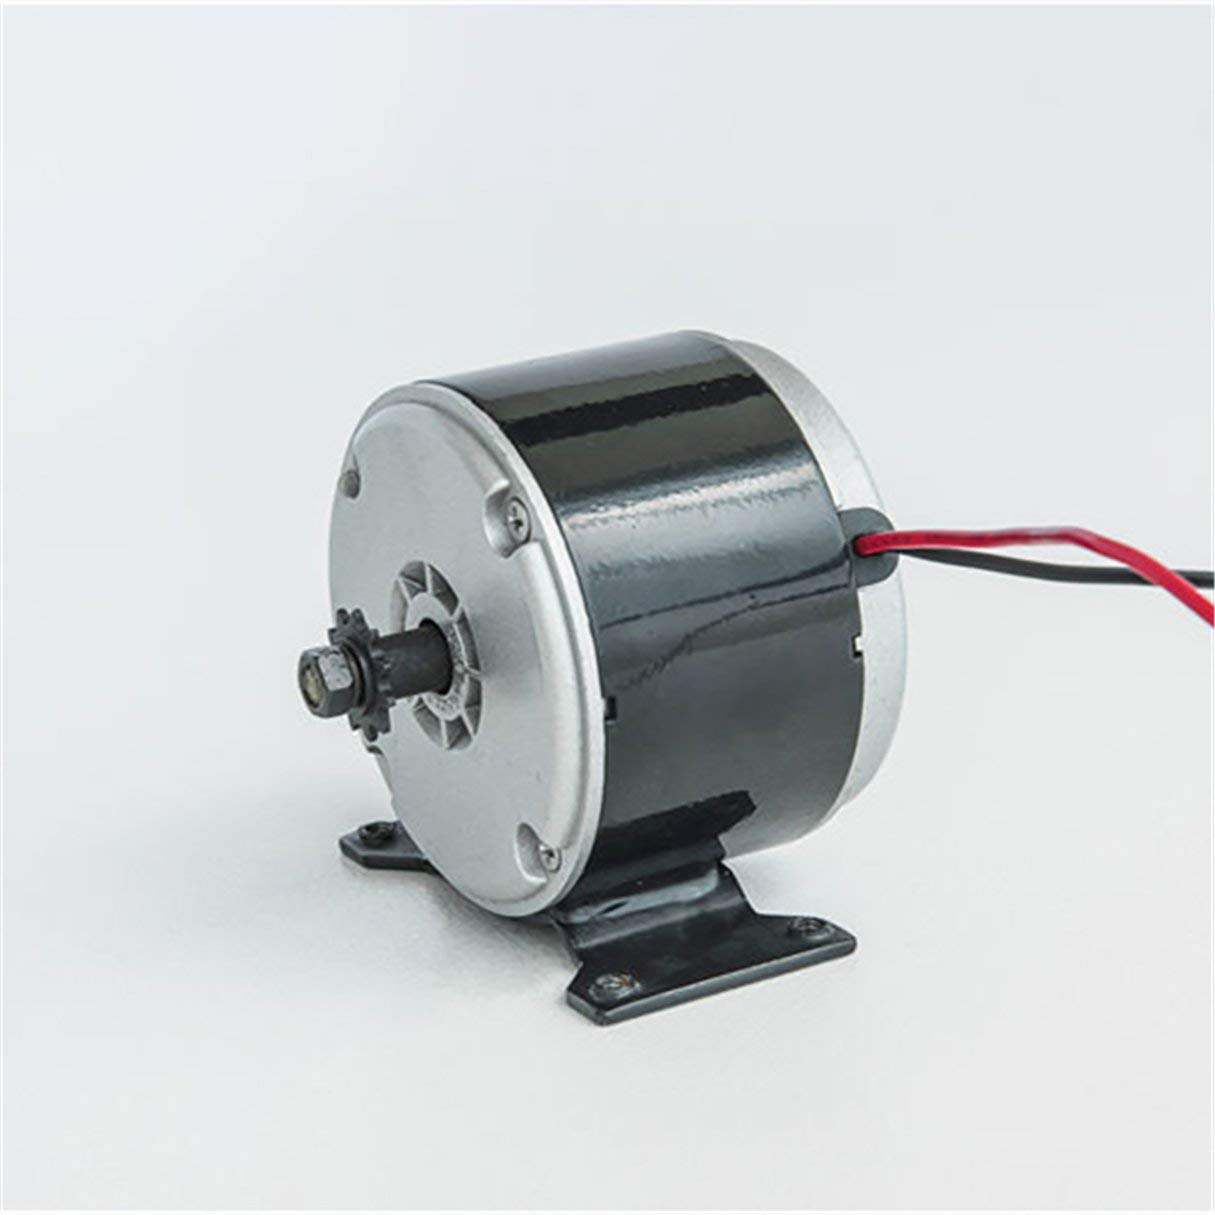 DC 24V Brushed Electric Motor Professional 250W 350W Permanent Magnet Electric Motor Generator For E Scooter Wafalano